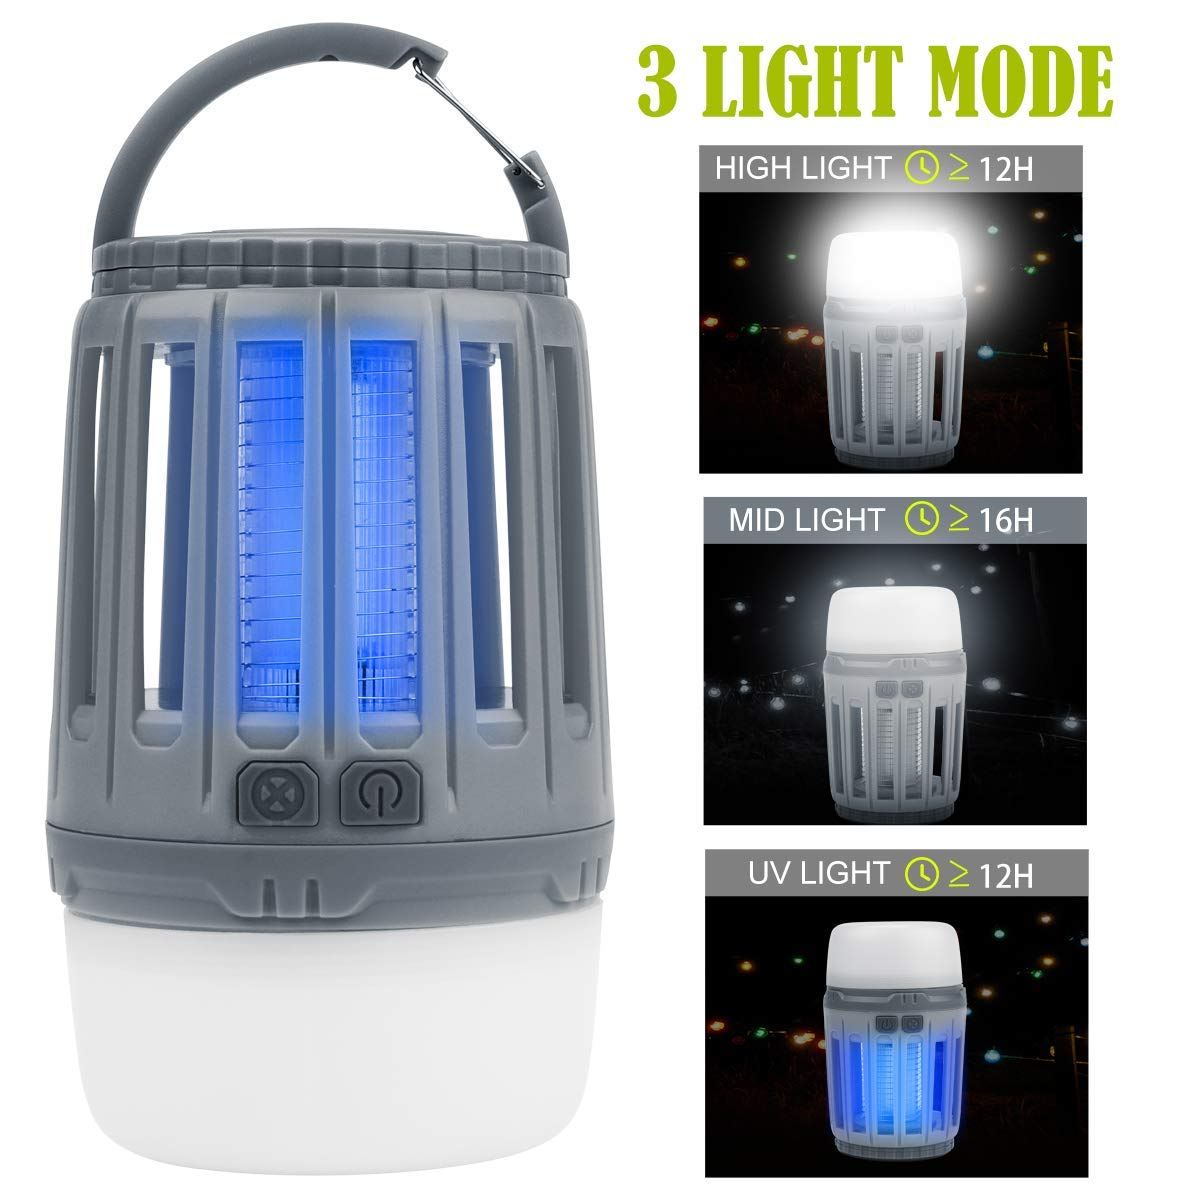 IREGRO Bug Zapper Mosquito Killer Lamp 2 in 1 LED Camping Lantern UV Insect Trap Portable Mosquito Zapper Tent Light USB Rechargeable For Camping Outdoor Indoor Hiking Fishing